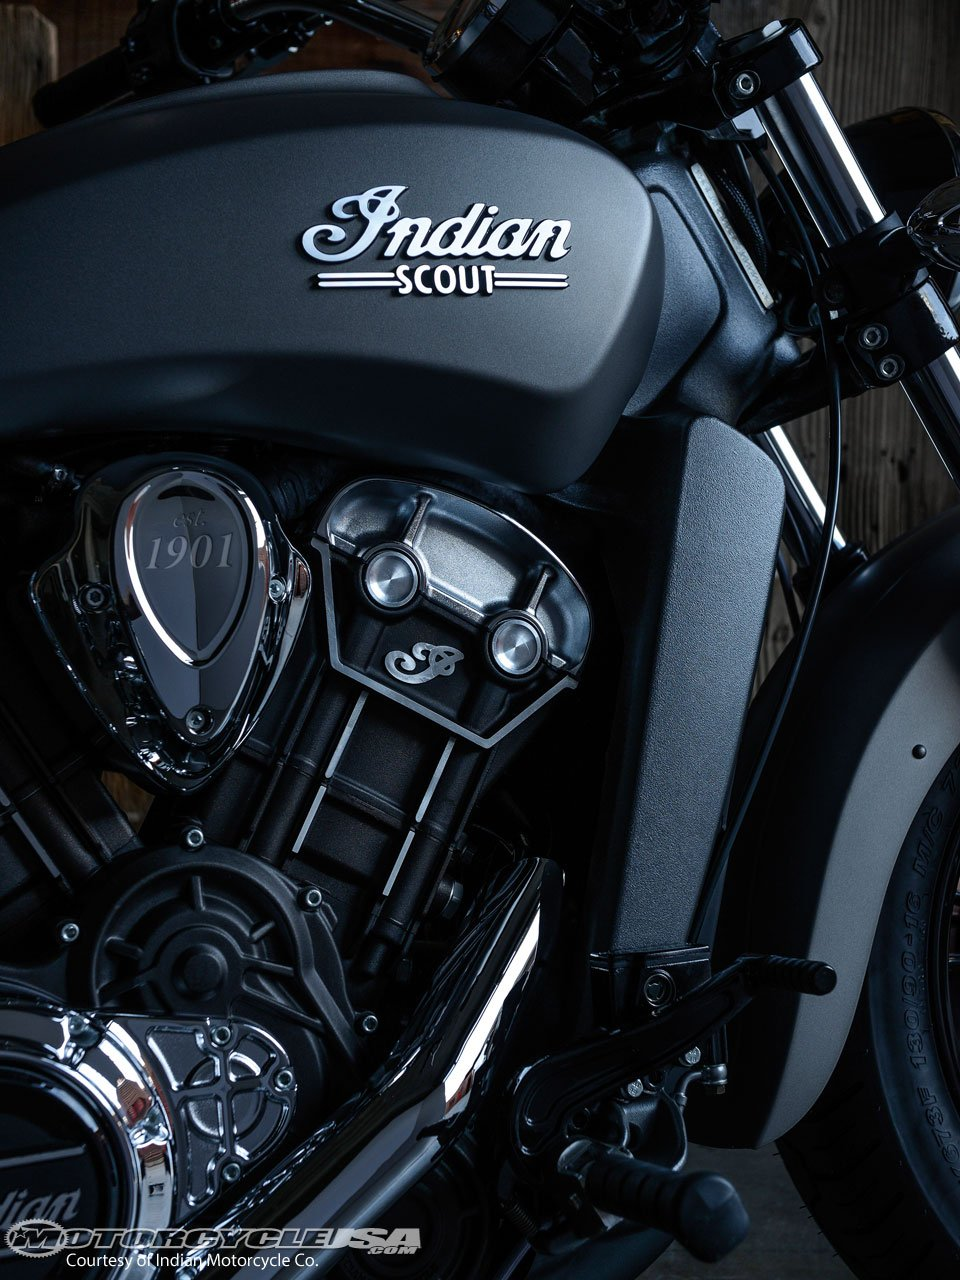 Free Download Indian Motorcycle Cell Phone Wallpaper 960x1280 For Your Desktop Mobile Tablet Explore 49 Indian Motorcycle Scout Phone Wallpapers Indian Scout Motorcycle 2015 Wallpaper 2015 Indian Scout Wallpaper Indian Motorcycle Wallpaper